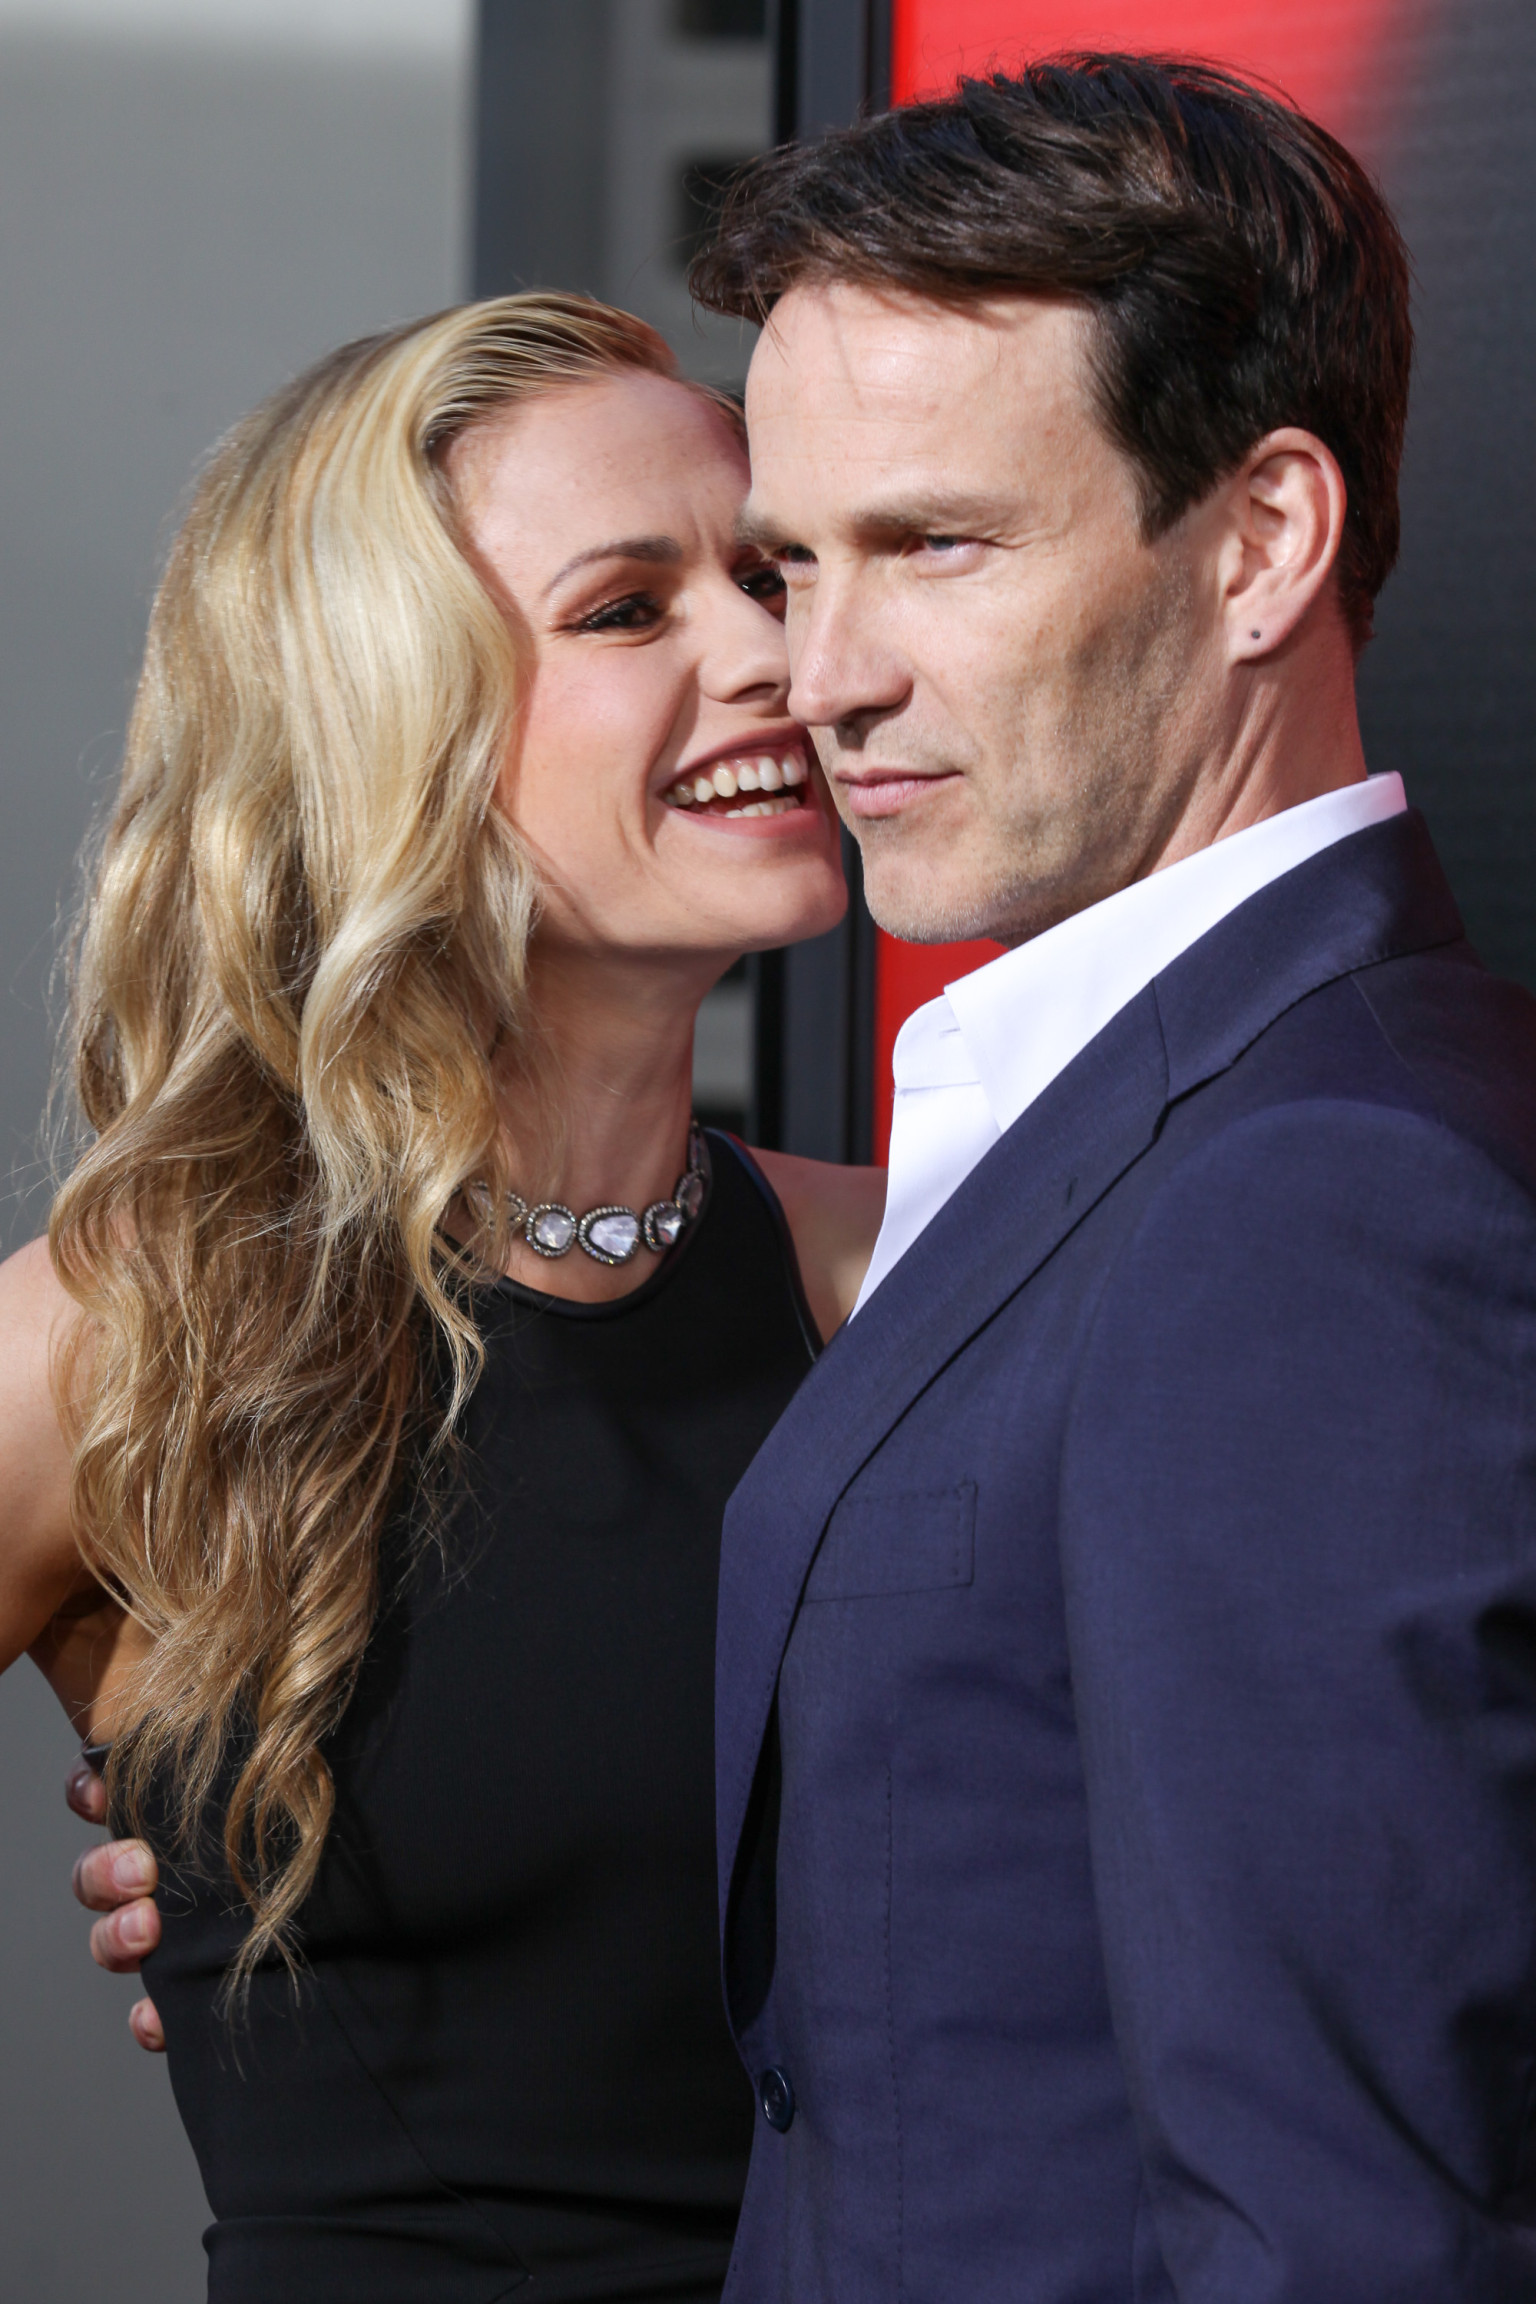 Anna Paquin And Stephen Moyer Pack On The PDA | HuffPost Anna Paquin Divorce